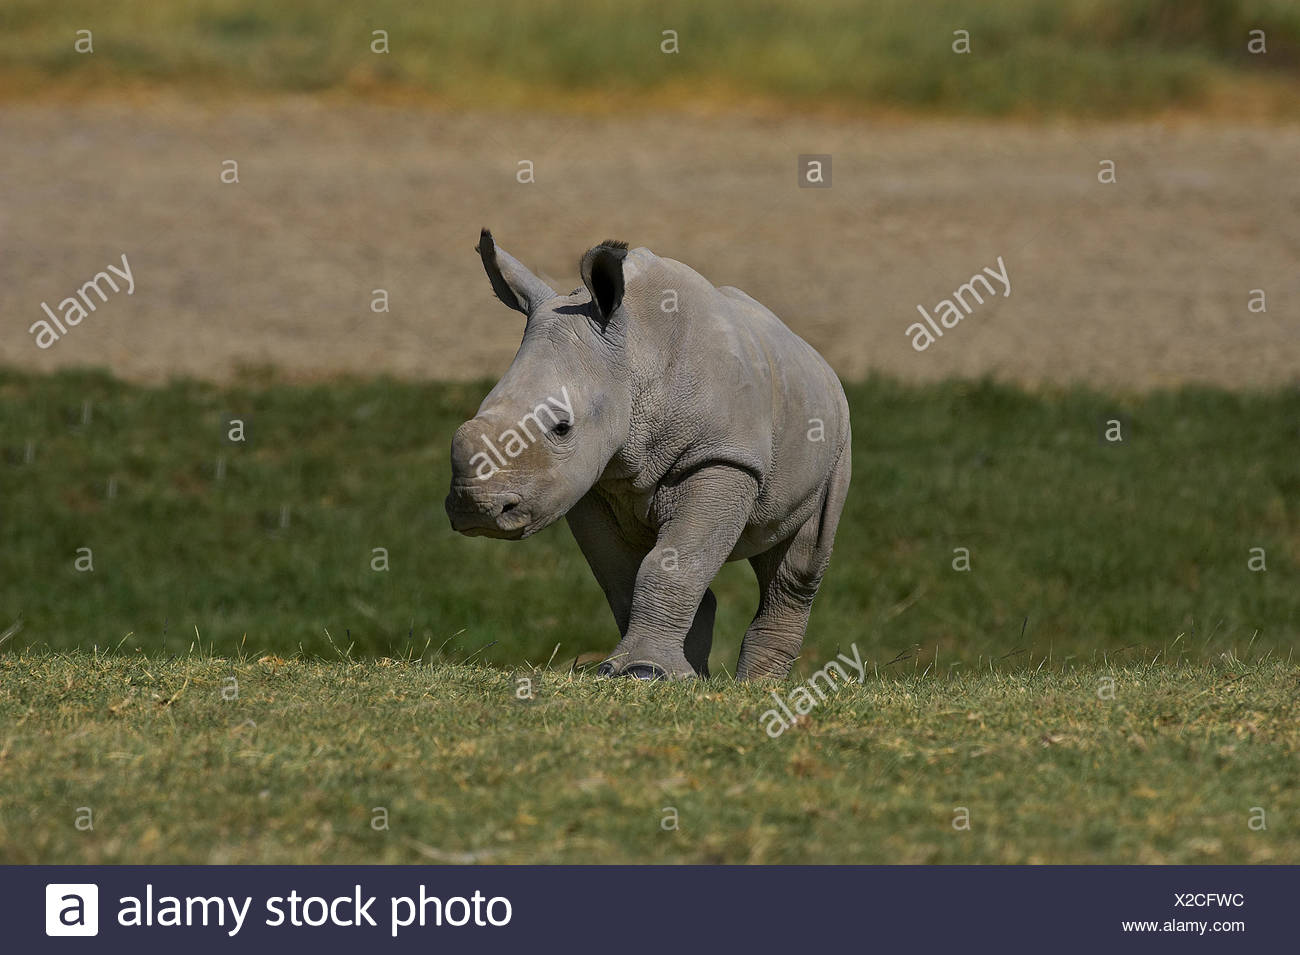 White Rhinoceros, ceratotherium simum, Calf, Nakuru park in Kenya Stock Photo